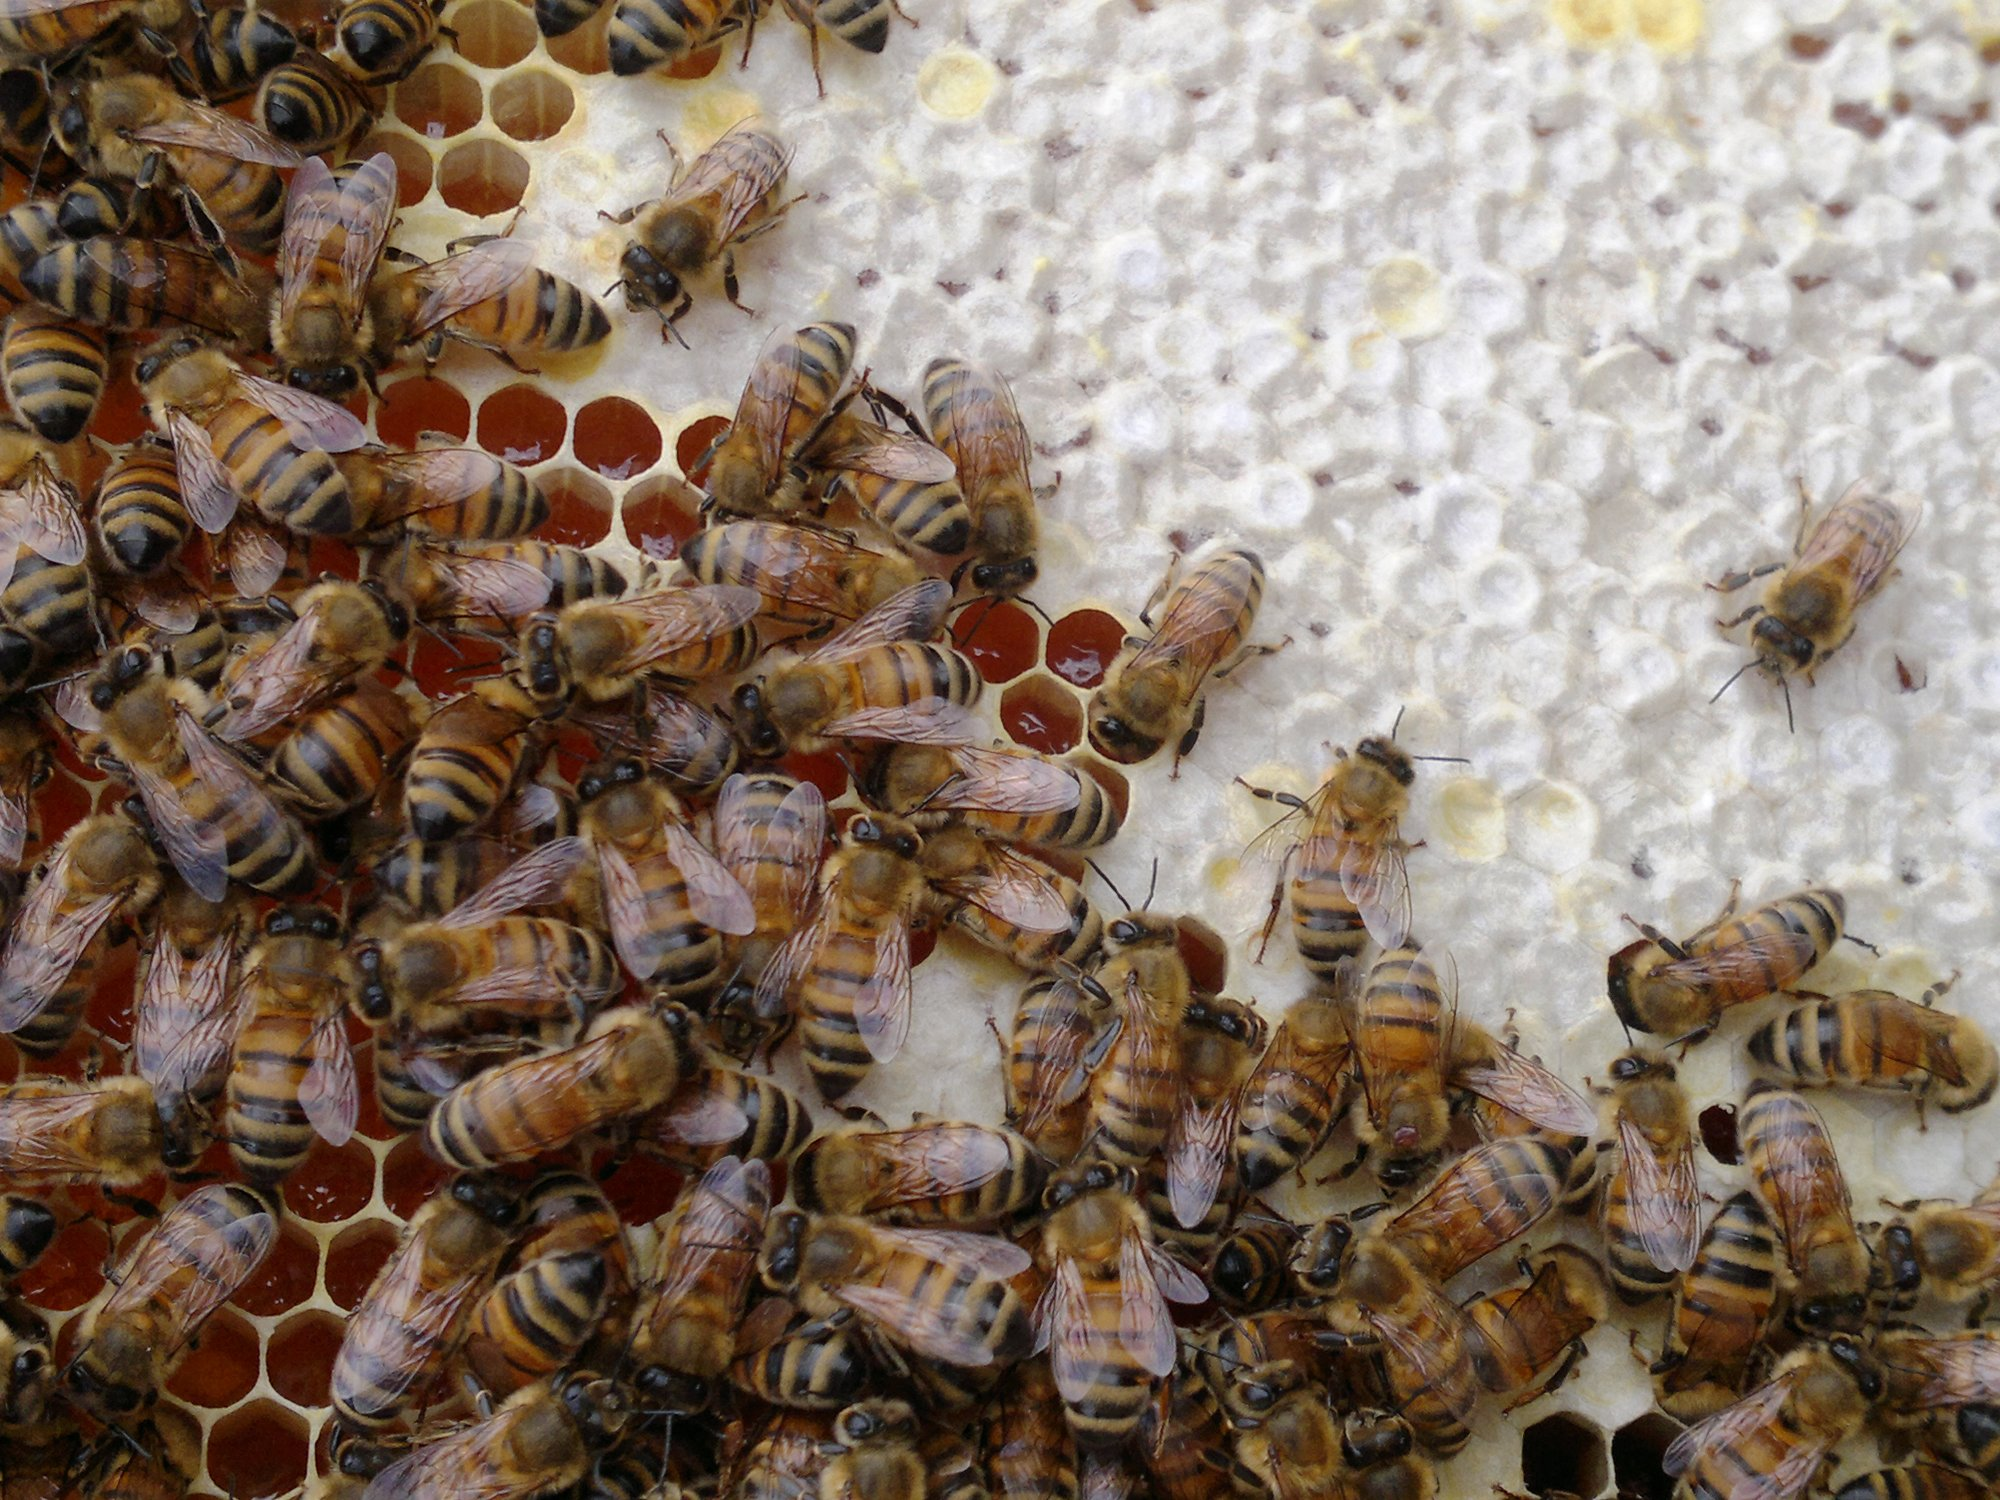 Bees working on the honey comb